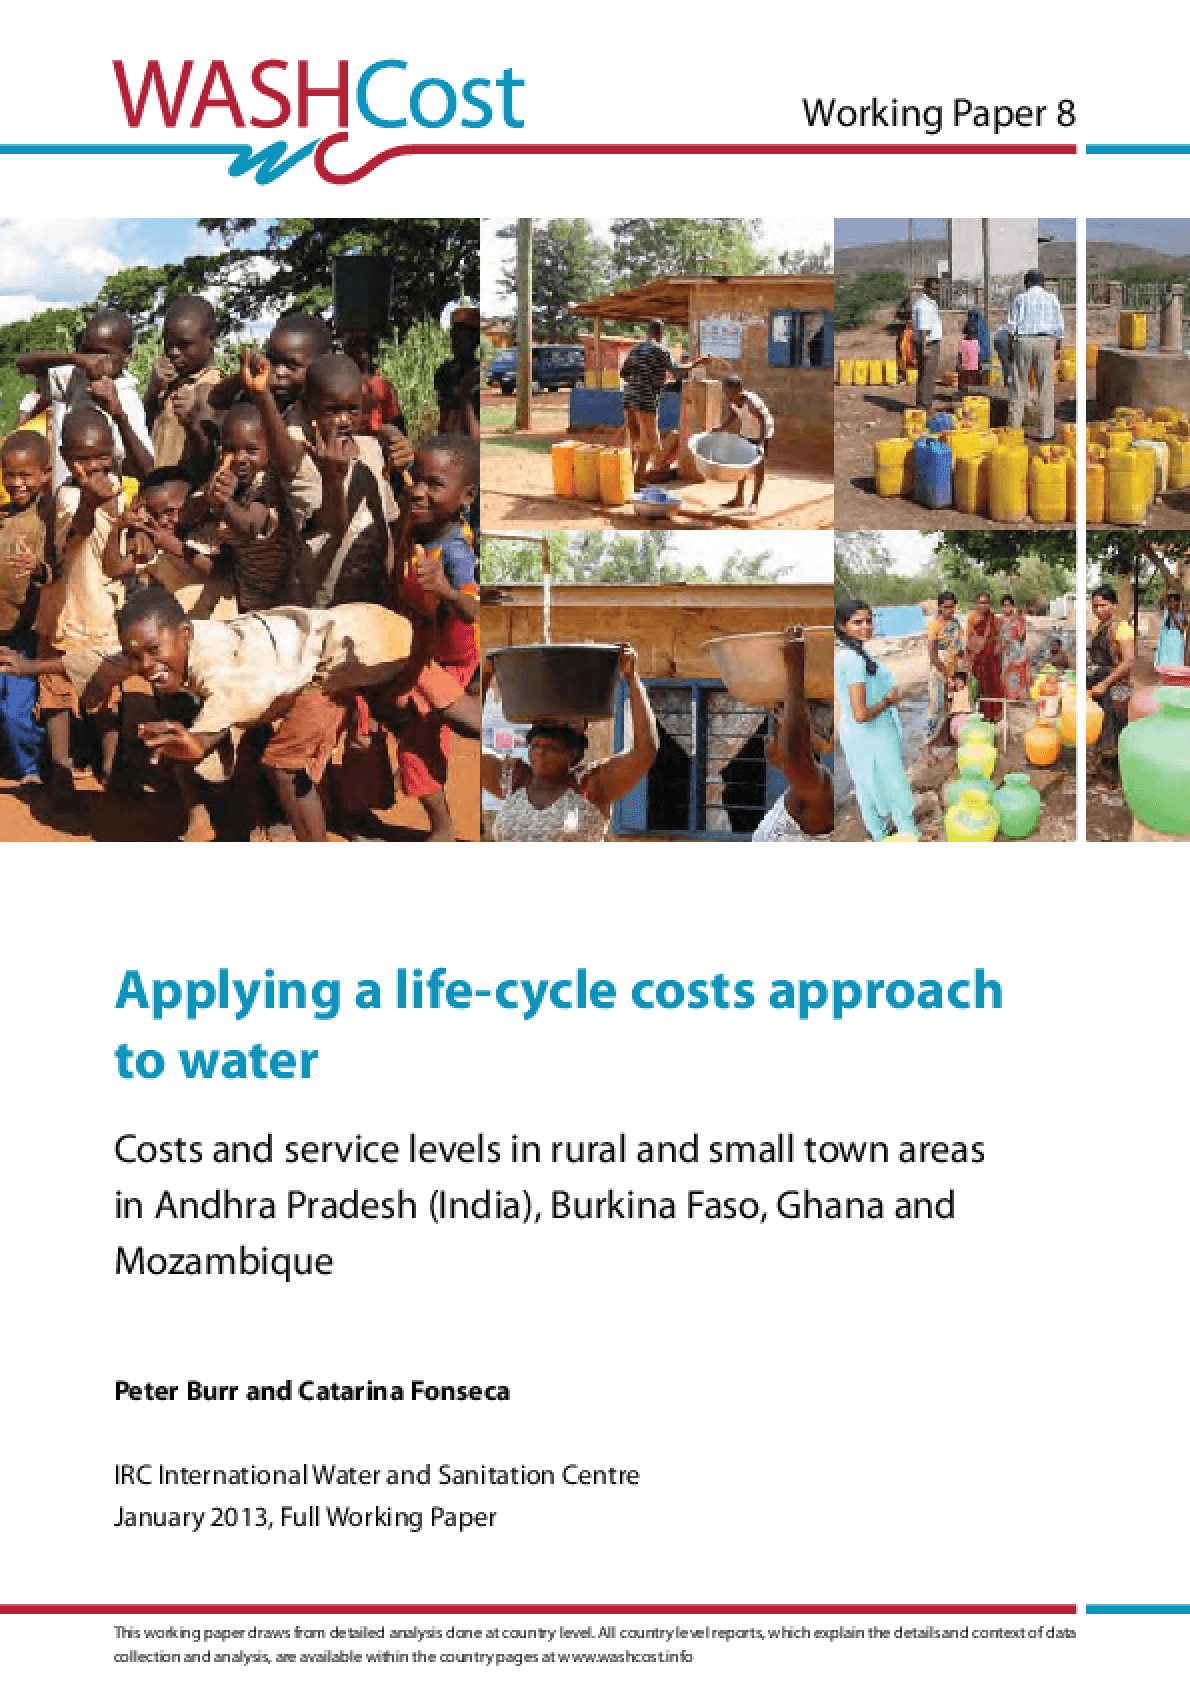 Applying a Life-Cycle Costs Approach to Water